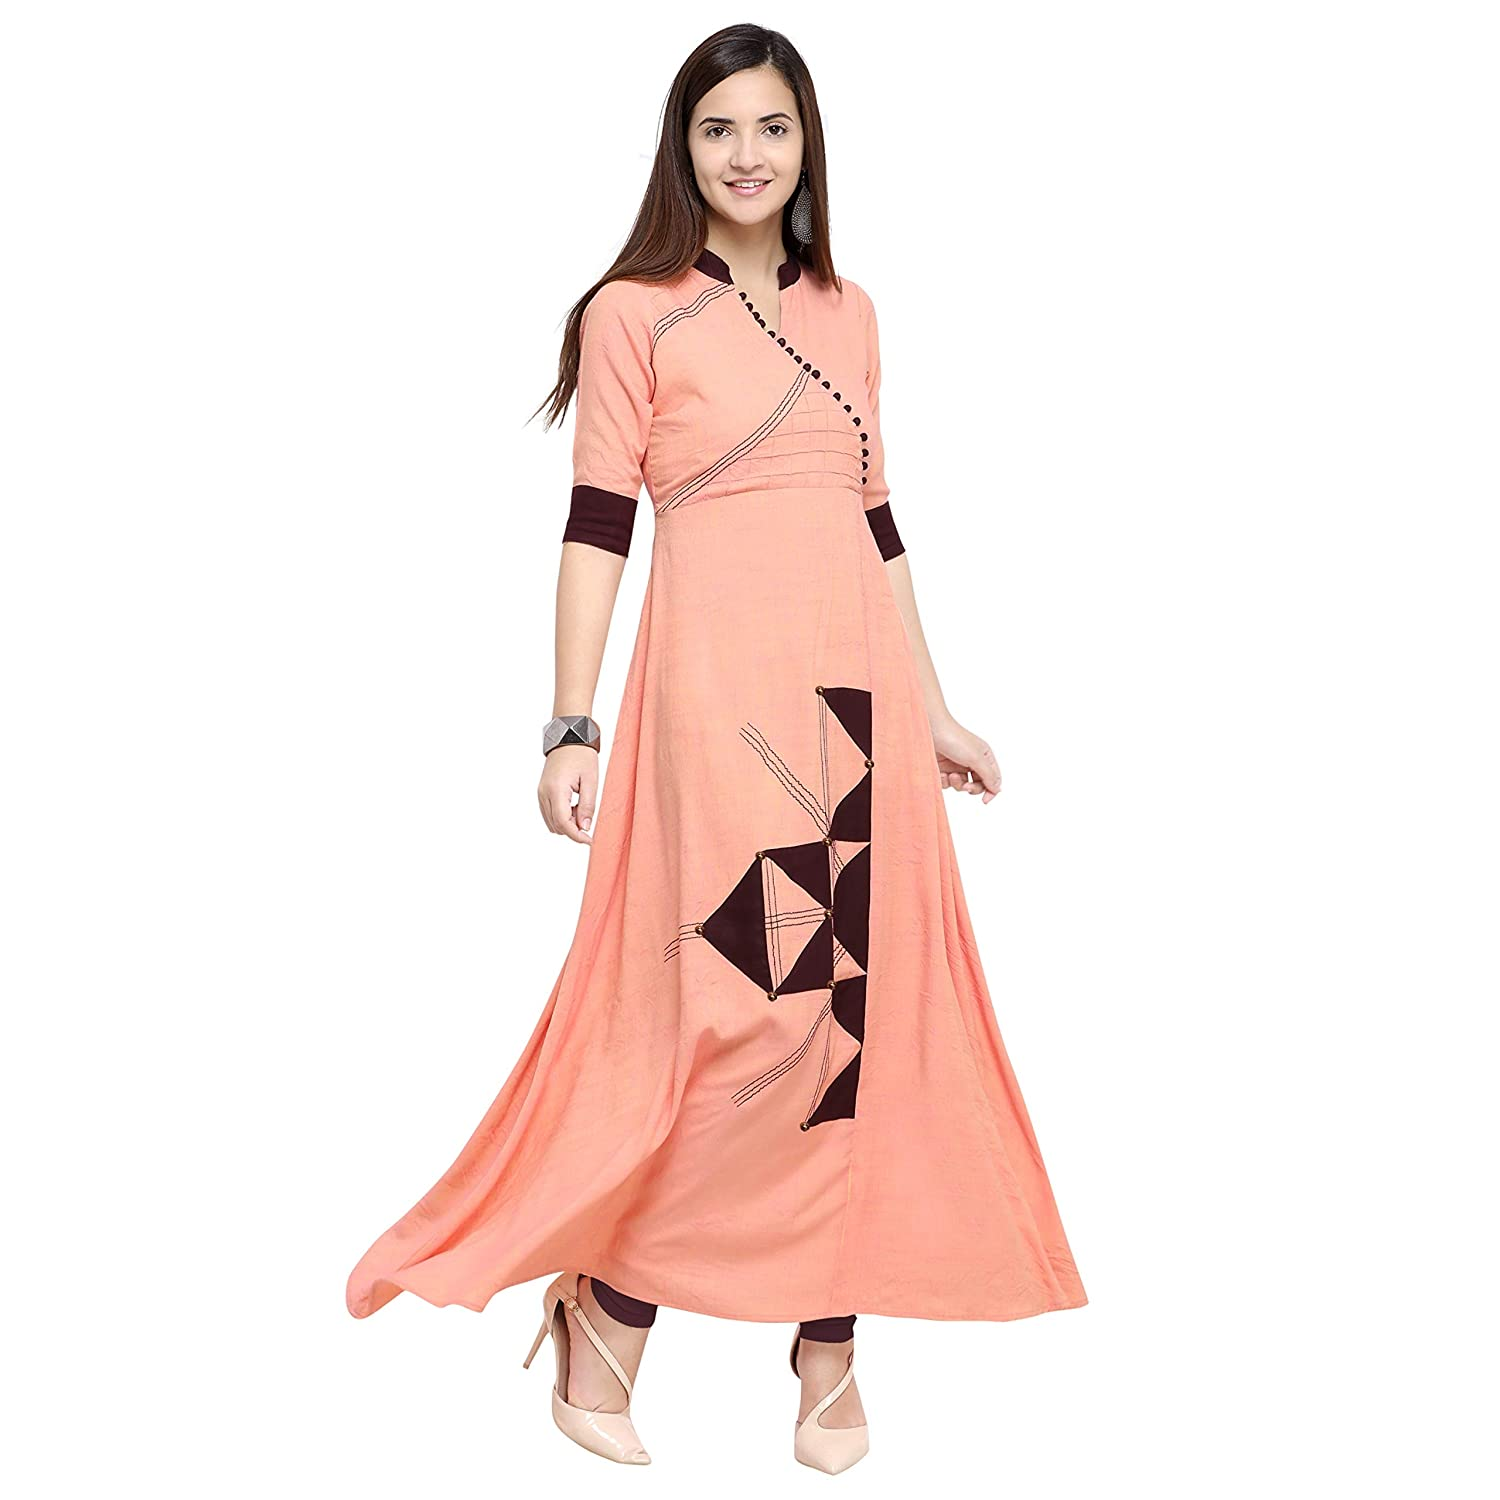 3c3a6a8fbd AK Creation Women's Light Pink,Orange,Off White Color Embroidered Flared  rayon fabric fancy look designer Long kurti: Amazon.in: Clothing &  Accessories